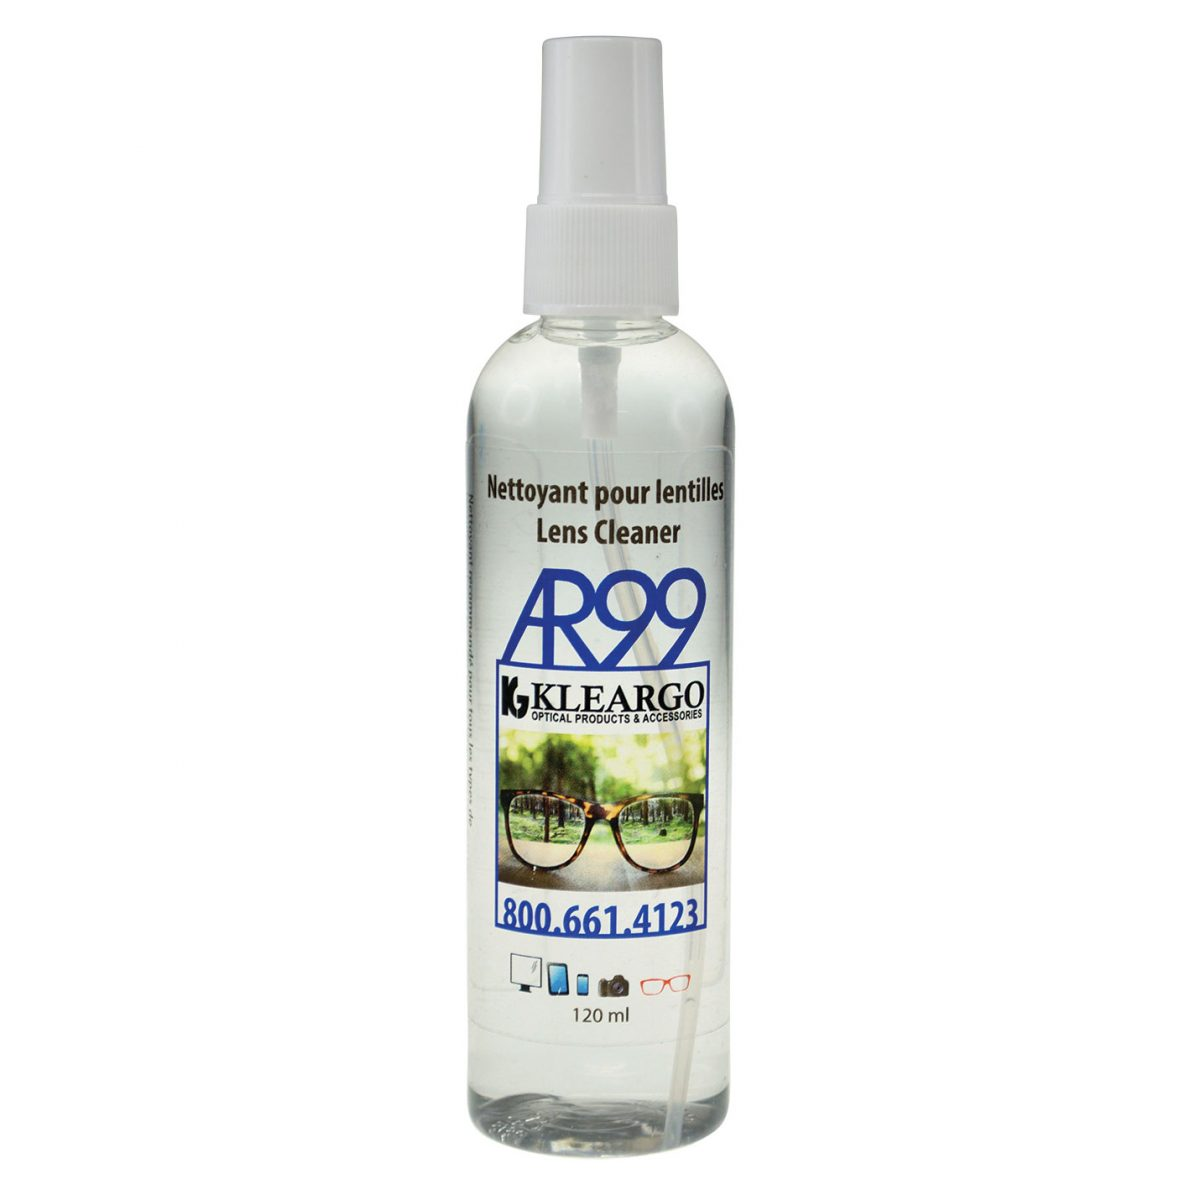 AR99-Anti-reflection-lens-cleaner